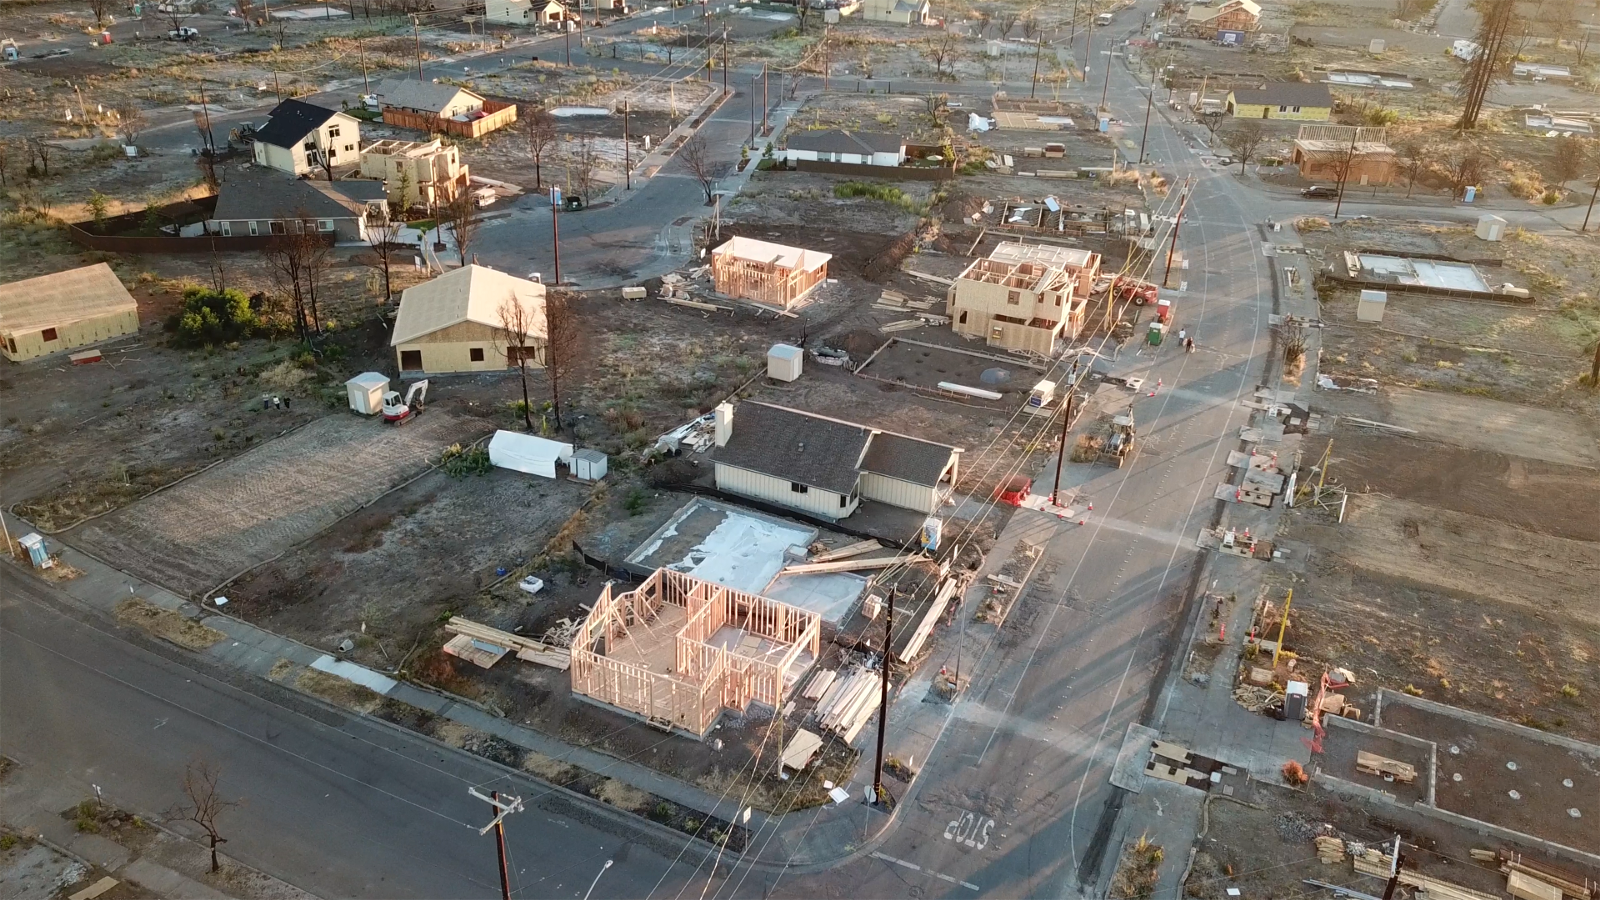 Using Mapping Technology To Reveal Destruction Recovery 1 Year